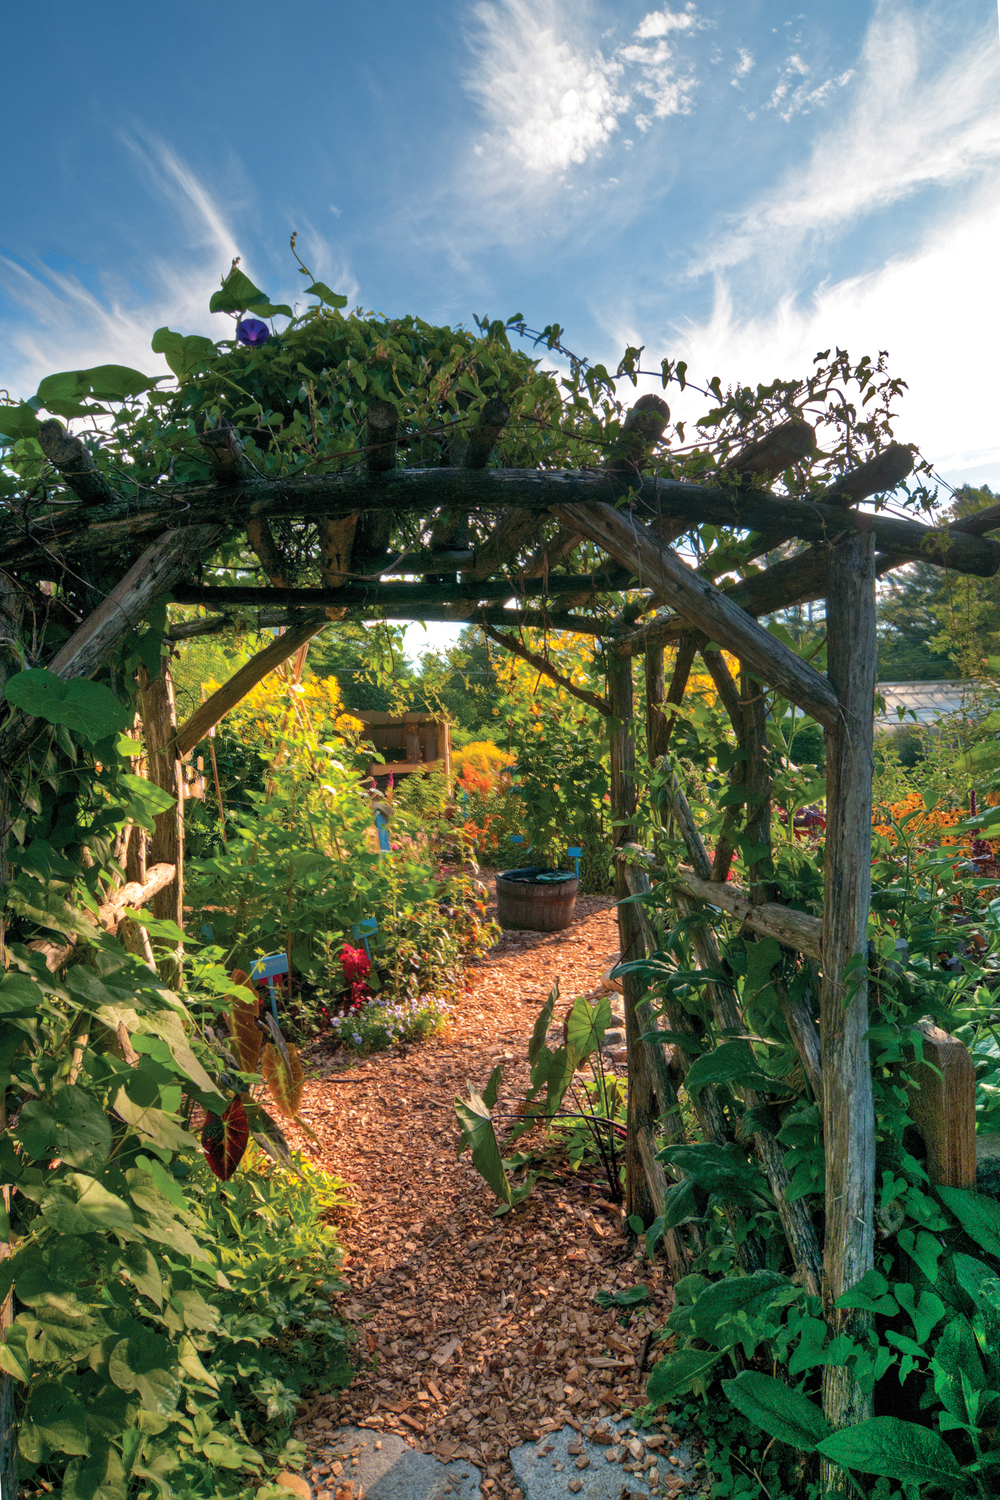 Children's garden, berkshire botanical garden, photo: jack sprano, courtesy berkshire botanical garden